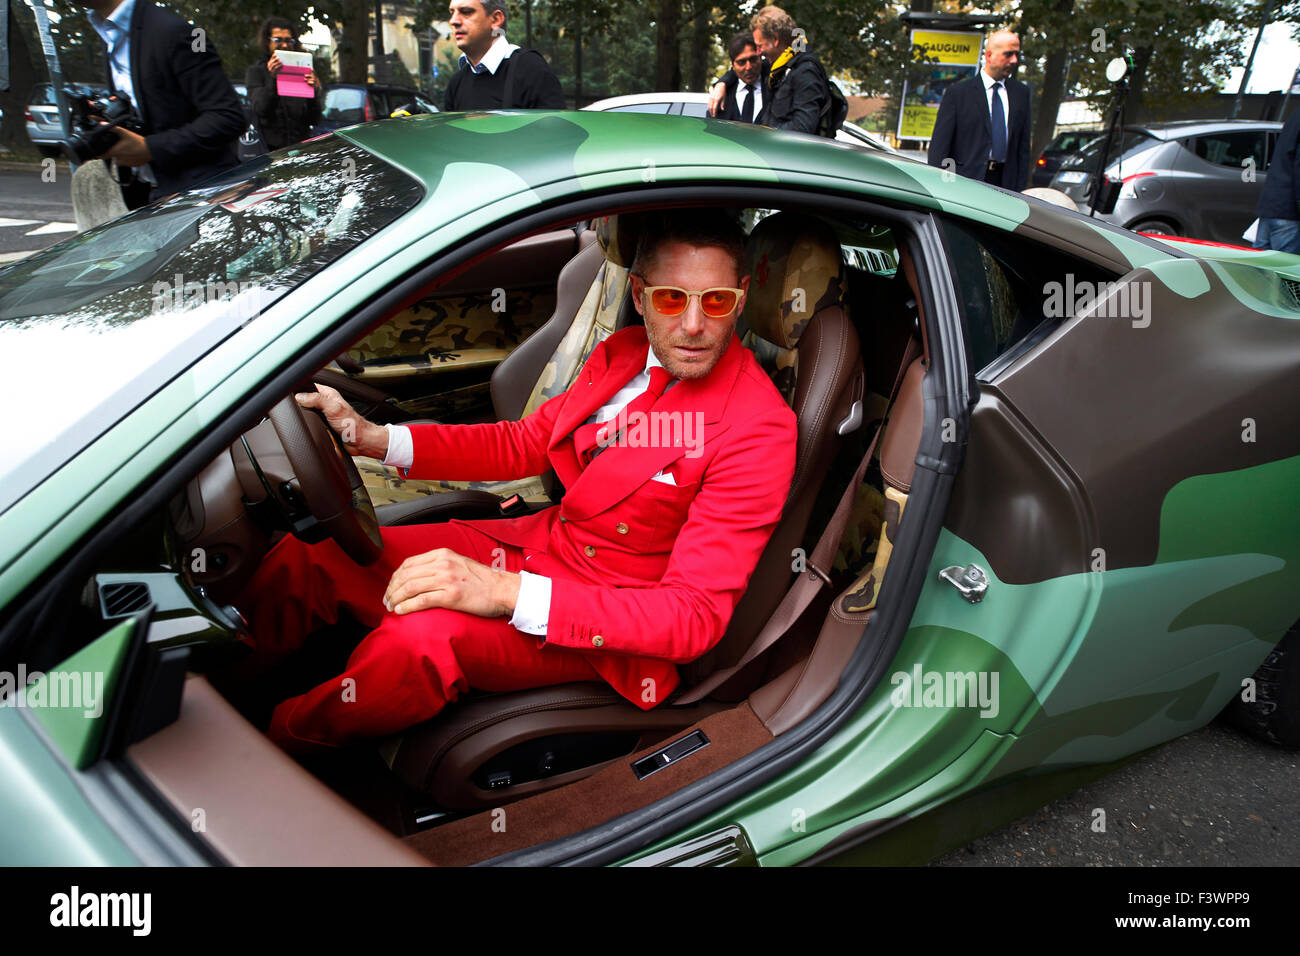 Lapo Elkann at the opening of the new headquarters of Garage Italia Customs in Milan, Italy, on Wednesday October - Stock Image